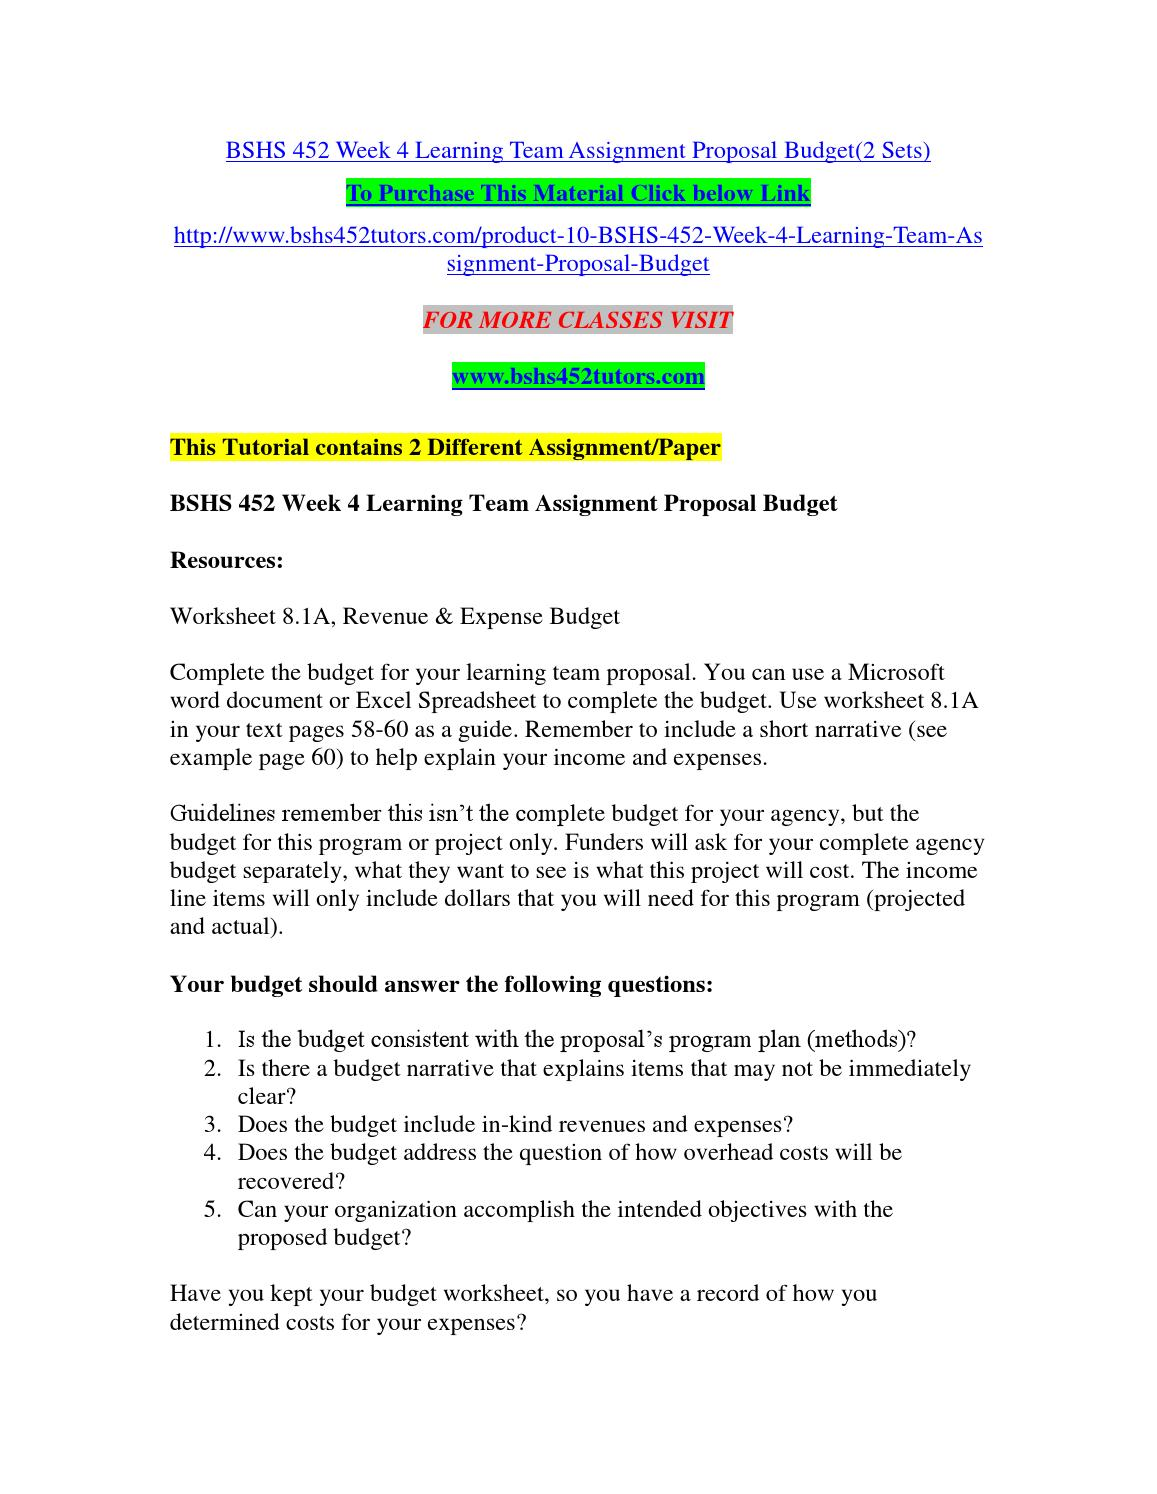 Bshs 452 week 4 learning team assignment proposal budget(2 sets) by